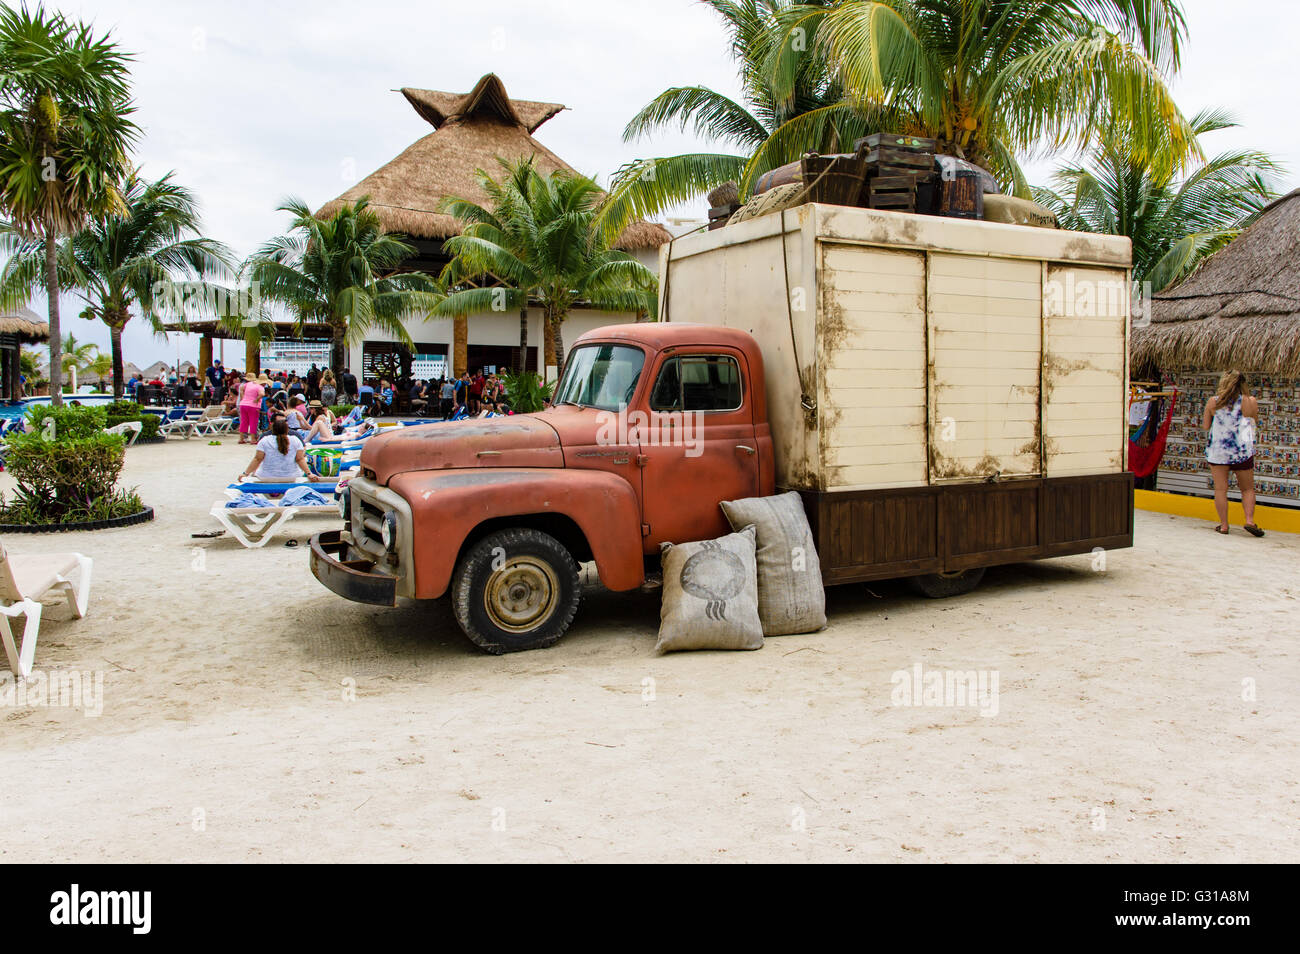 Vintage truck in the square of the Costa Maya shopping visitor center.  Costa Maya, Mexico - Stock Image